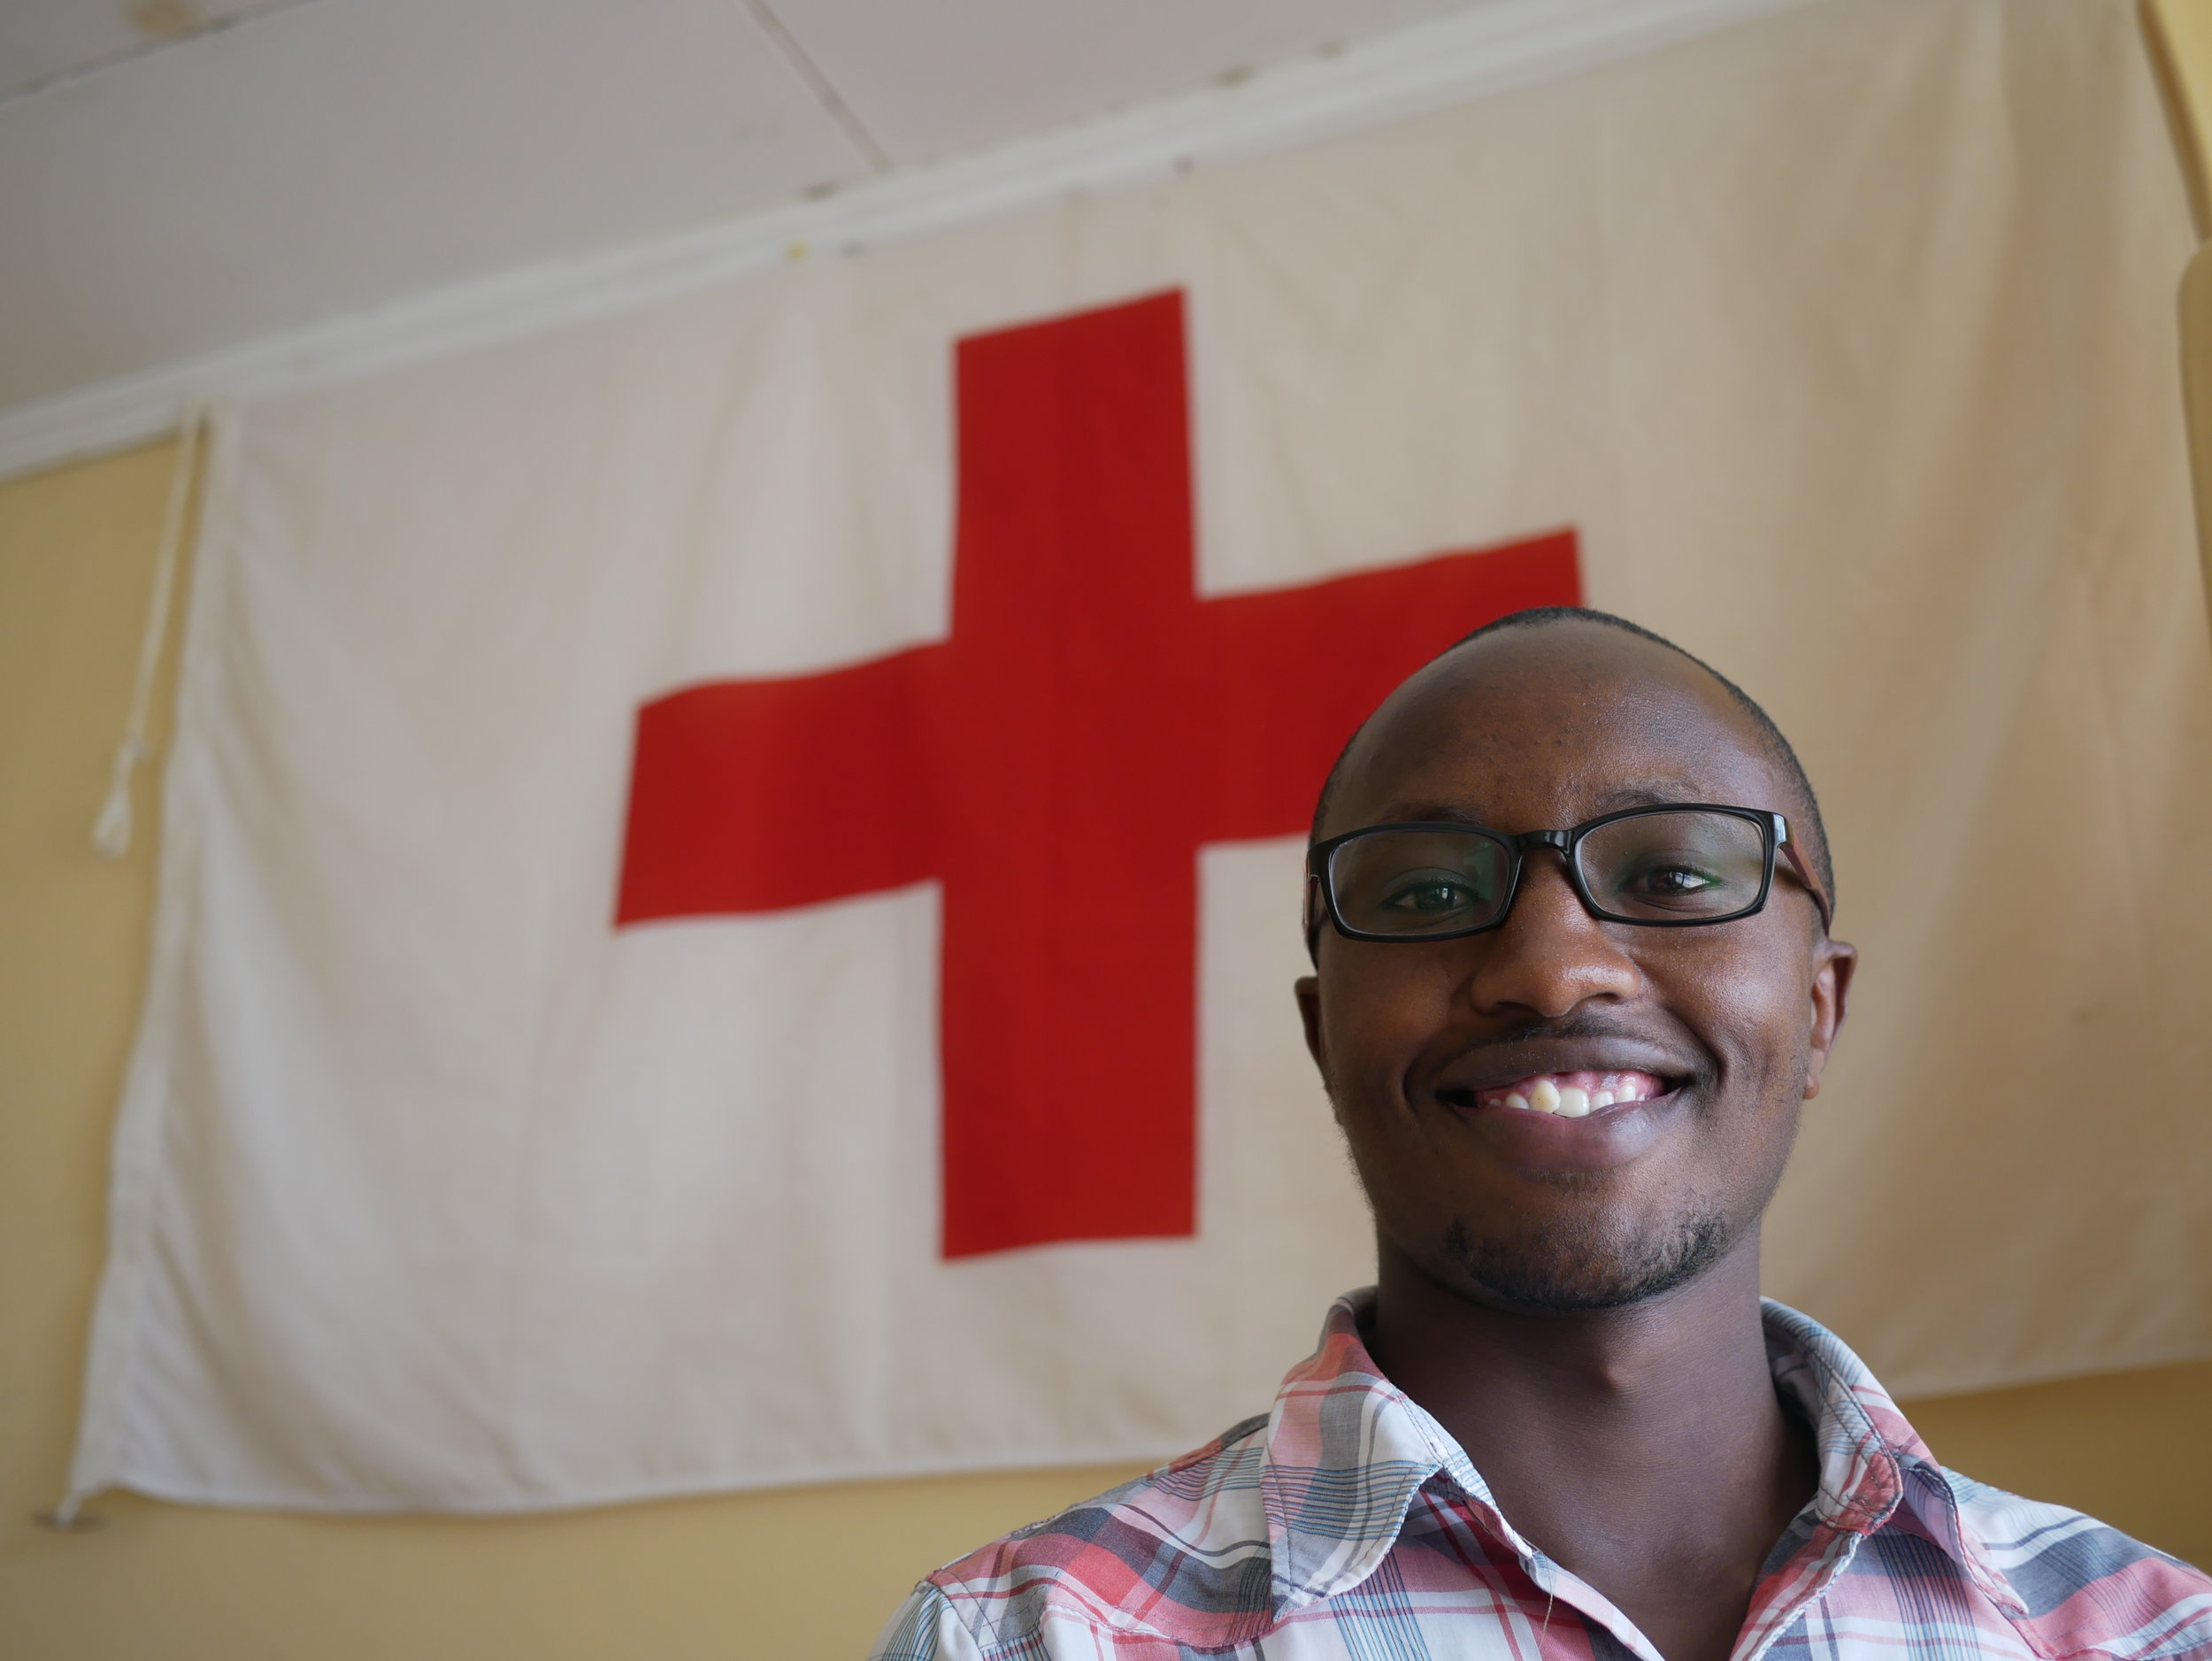 Sam - Sam is a Red Cross volunteer from Nanyuki. He recently finished his BSc. in Entrepreneurship and has a heart and passion of service to the community.- I love teamwork, developing leadership skills and engaging with the community at large.